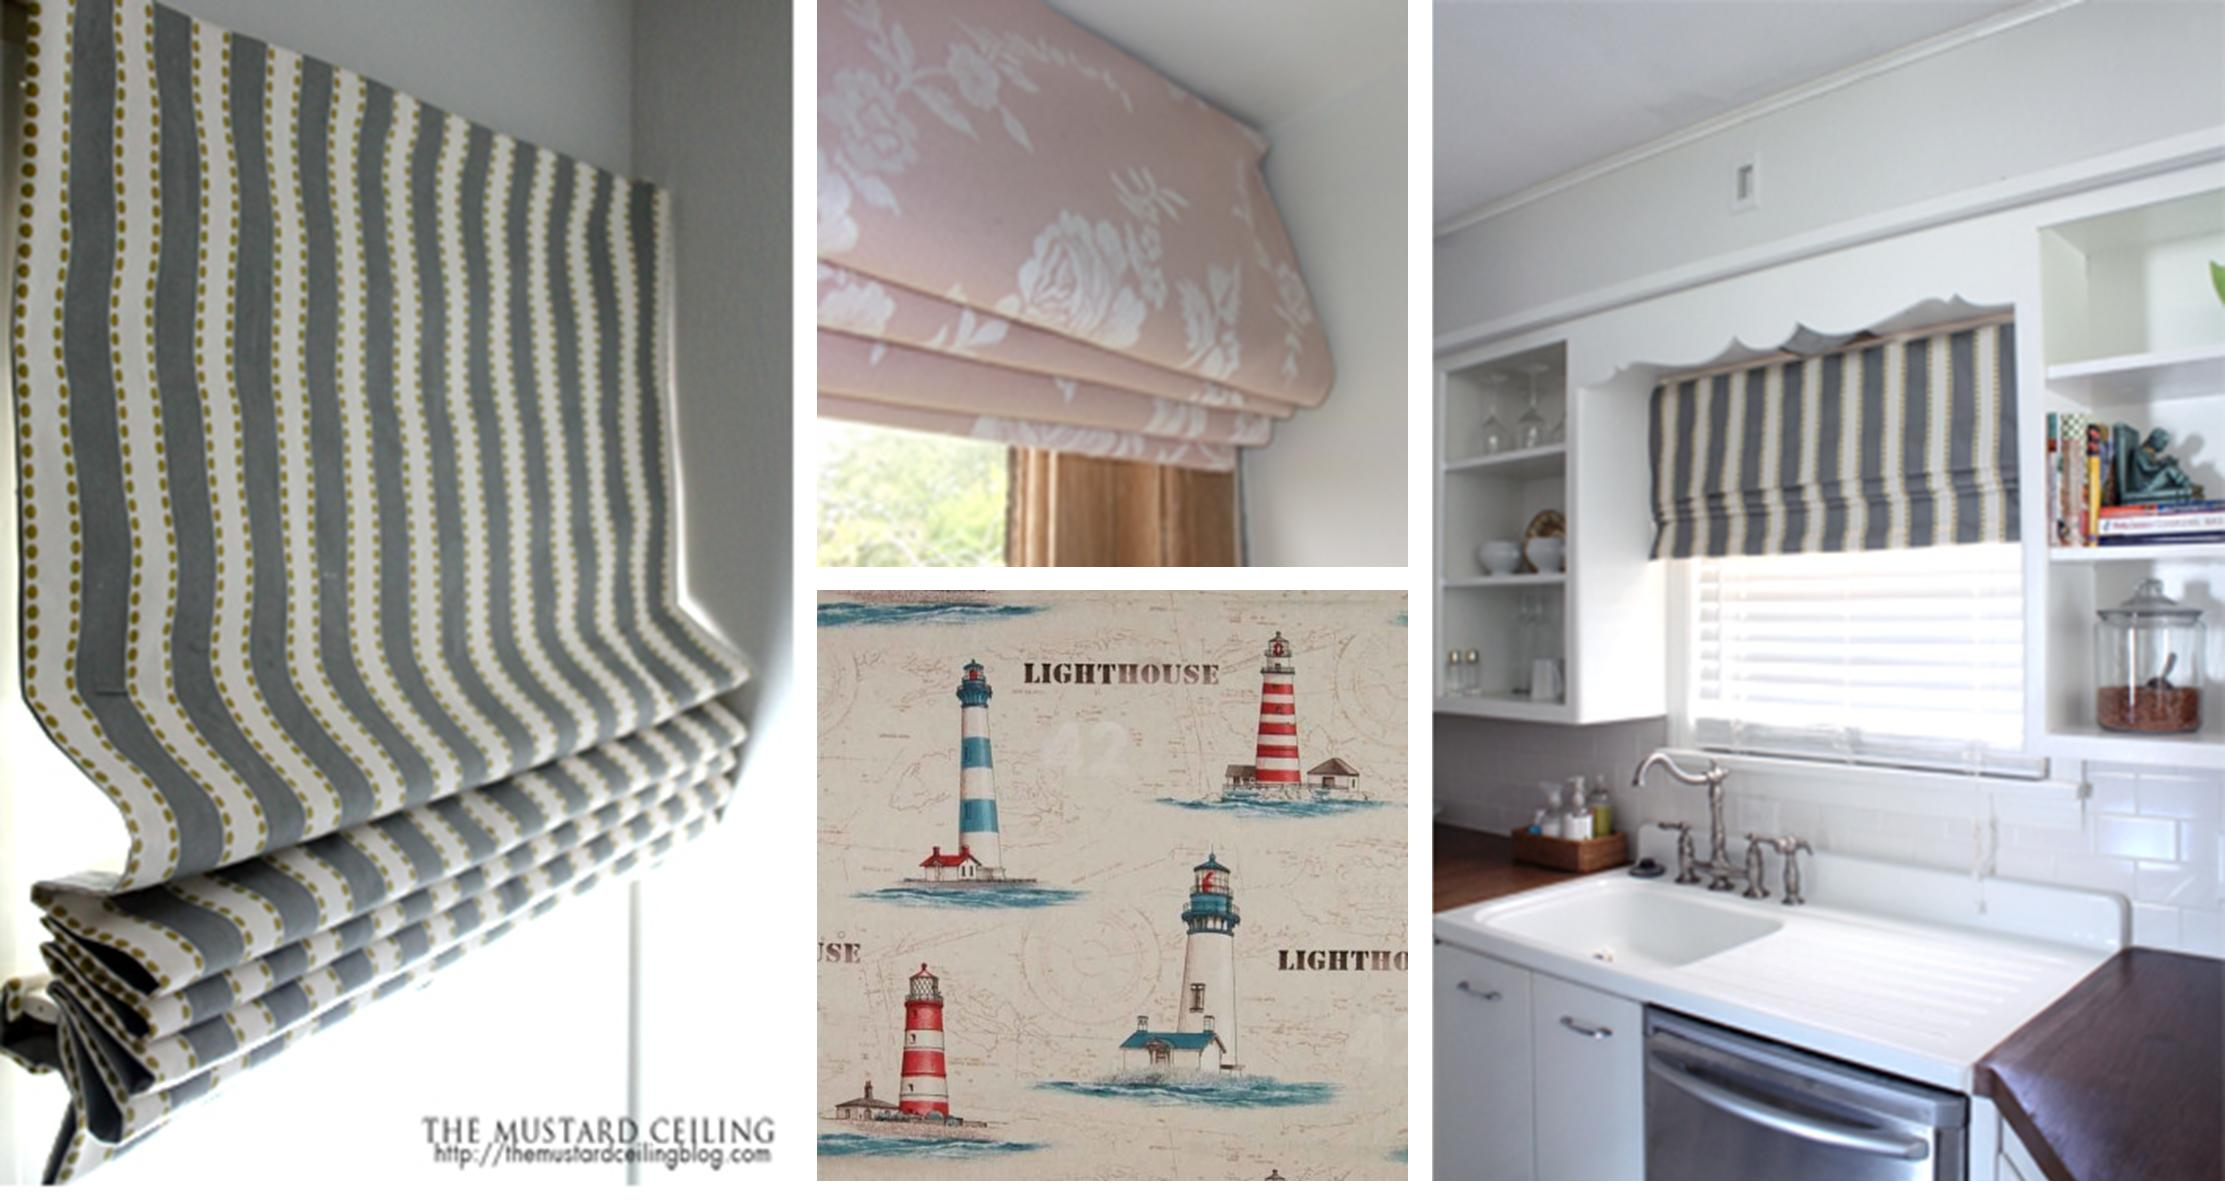 My new sewing project - making roman blinds